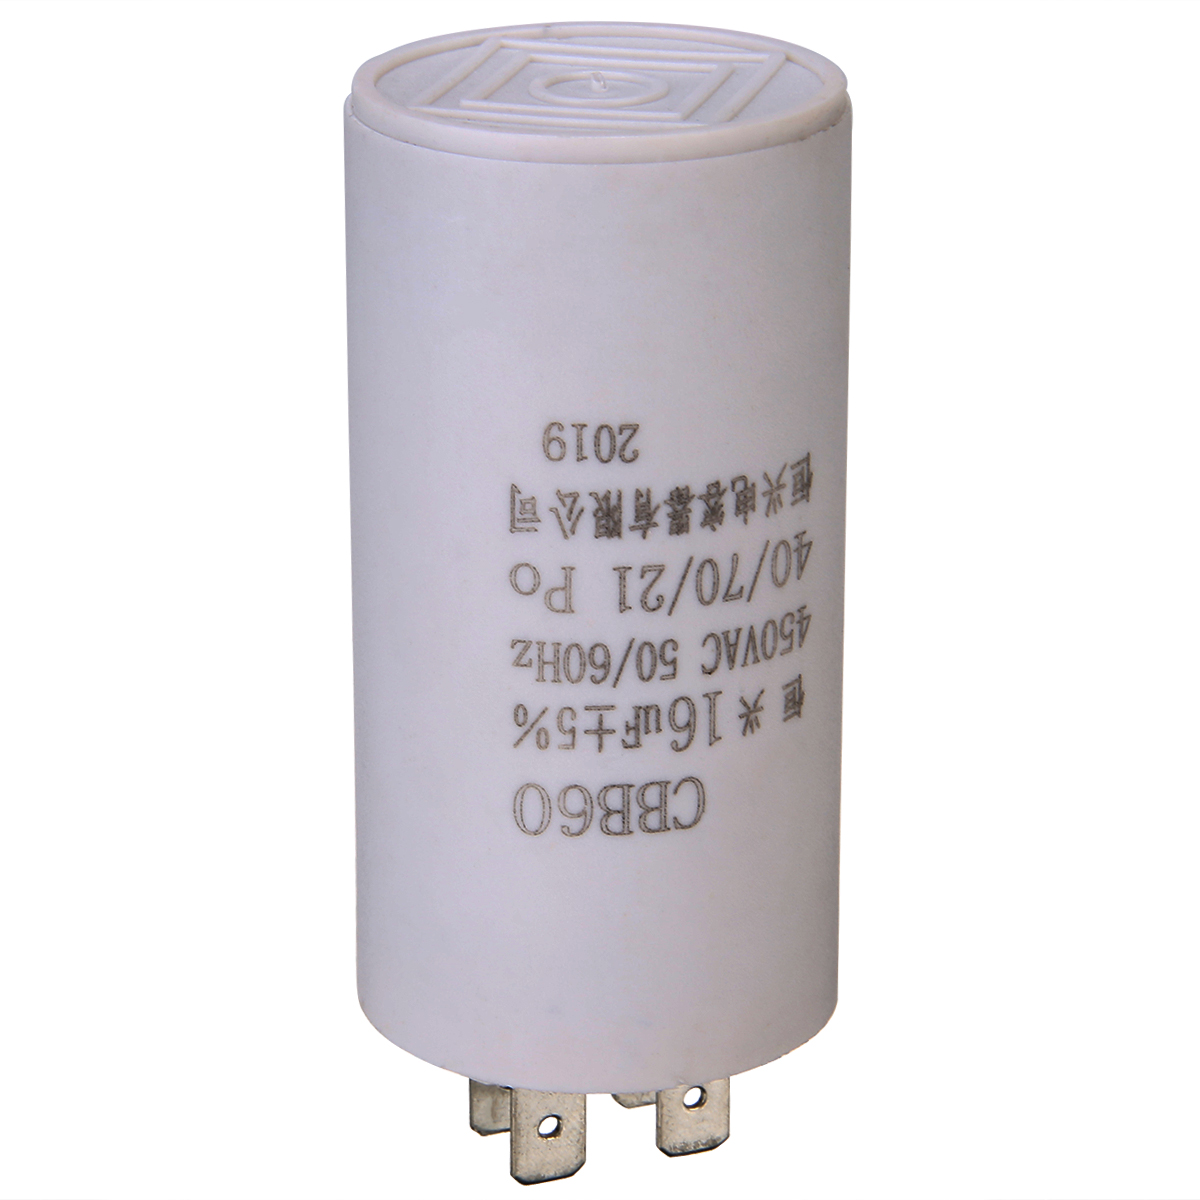 1pc-double-insert-parts-starting-capacitor-motor-permanent-16uf-450v-50-60-hz-cbb60-capacitor-ac-motor-micro-parts